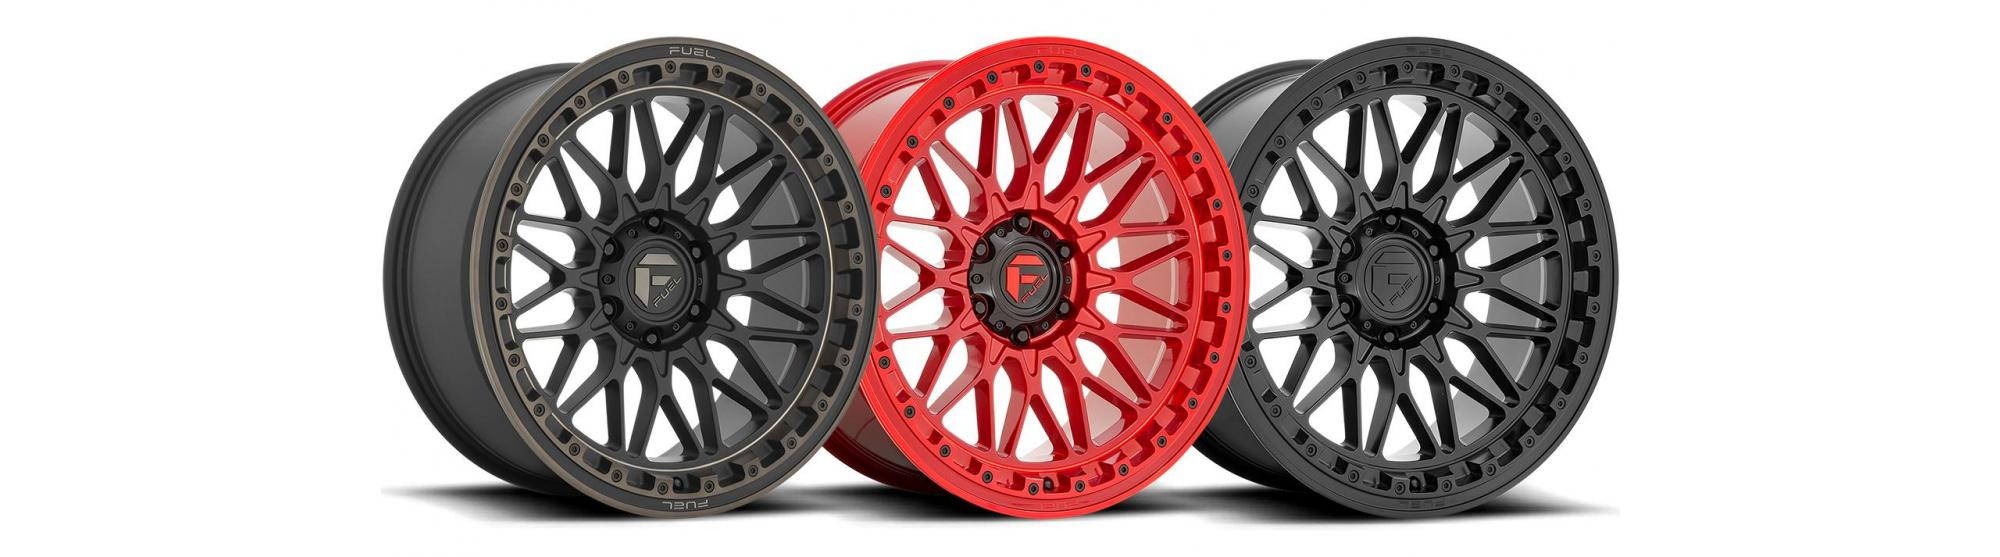 THE NEW TRIGGER FROM FUEL OFF-ROAD WHEELS